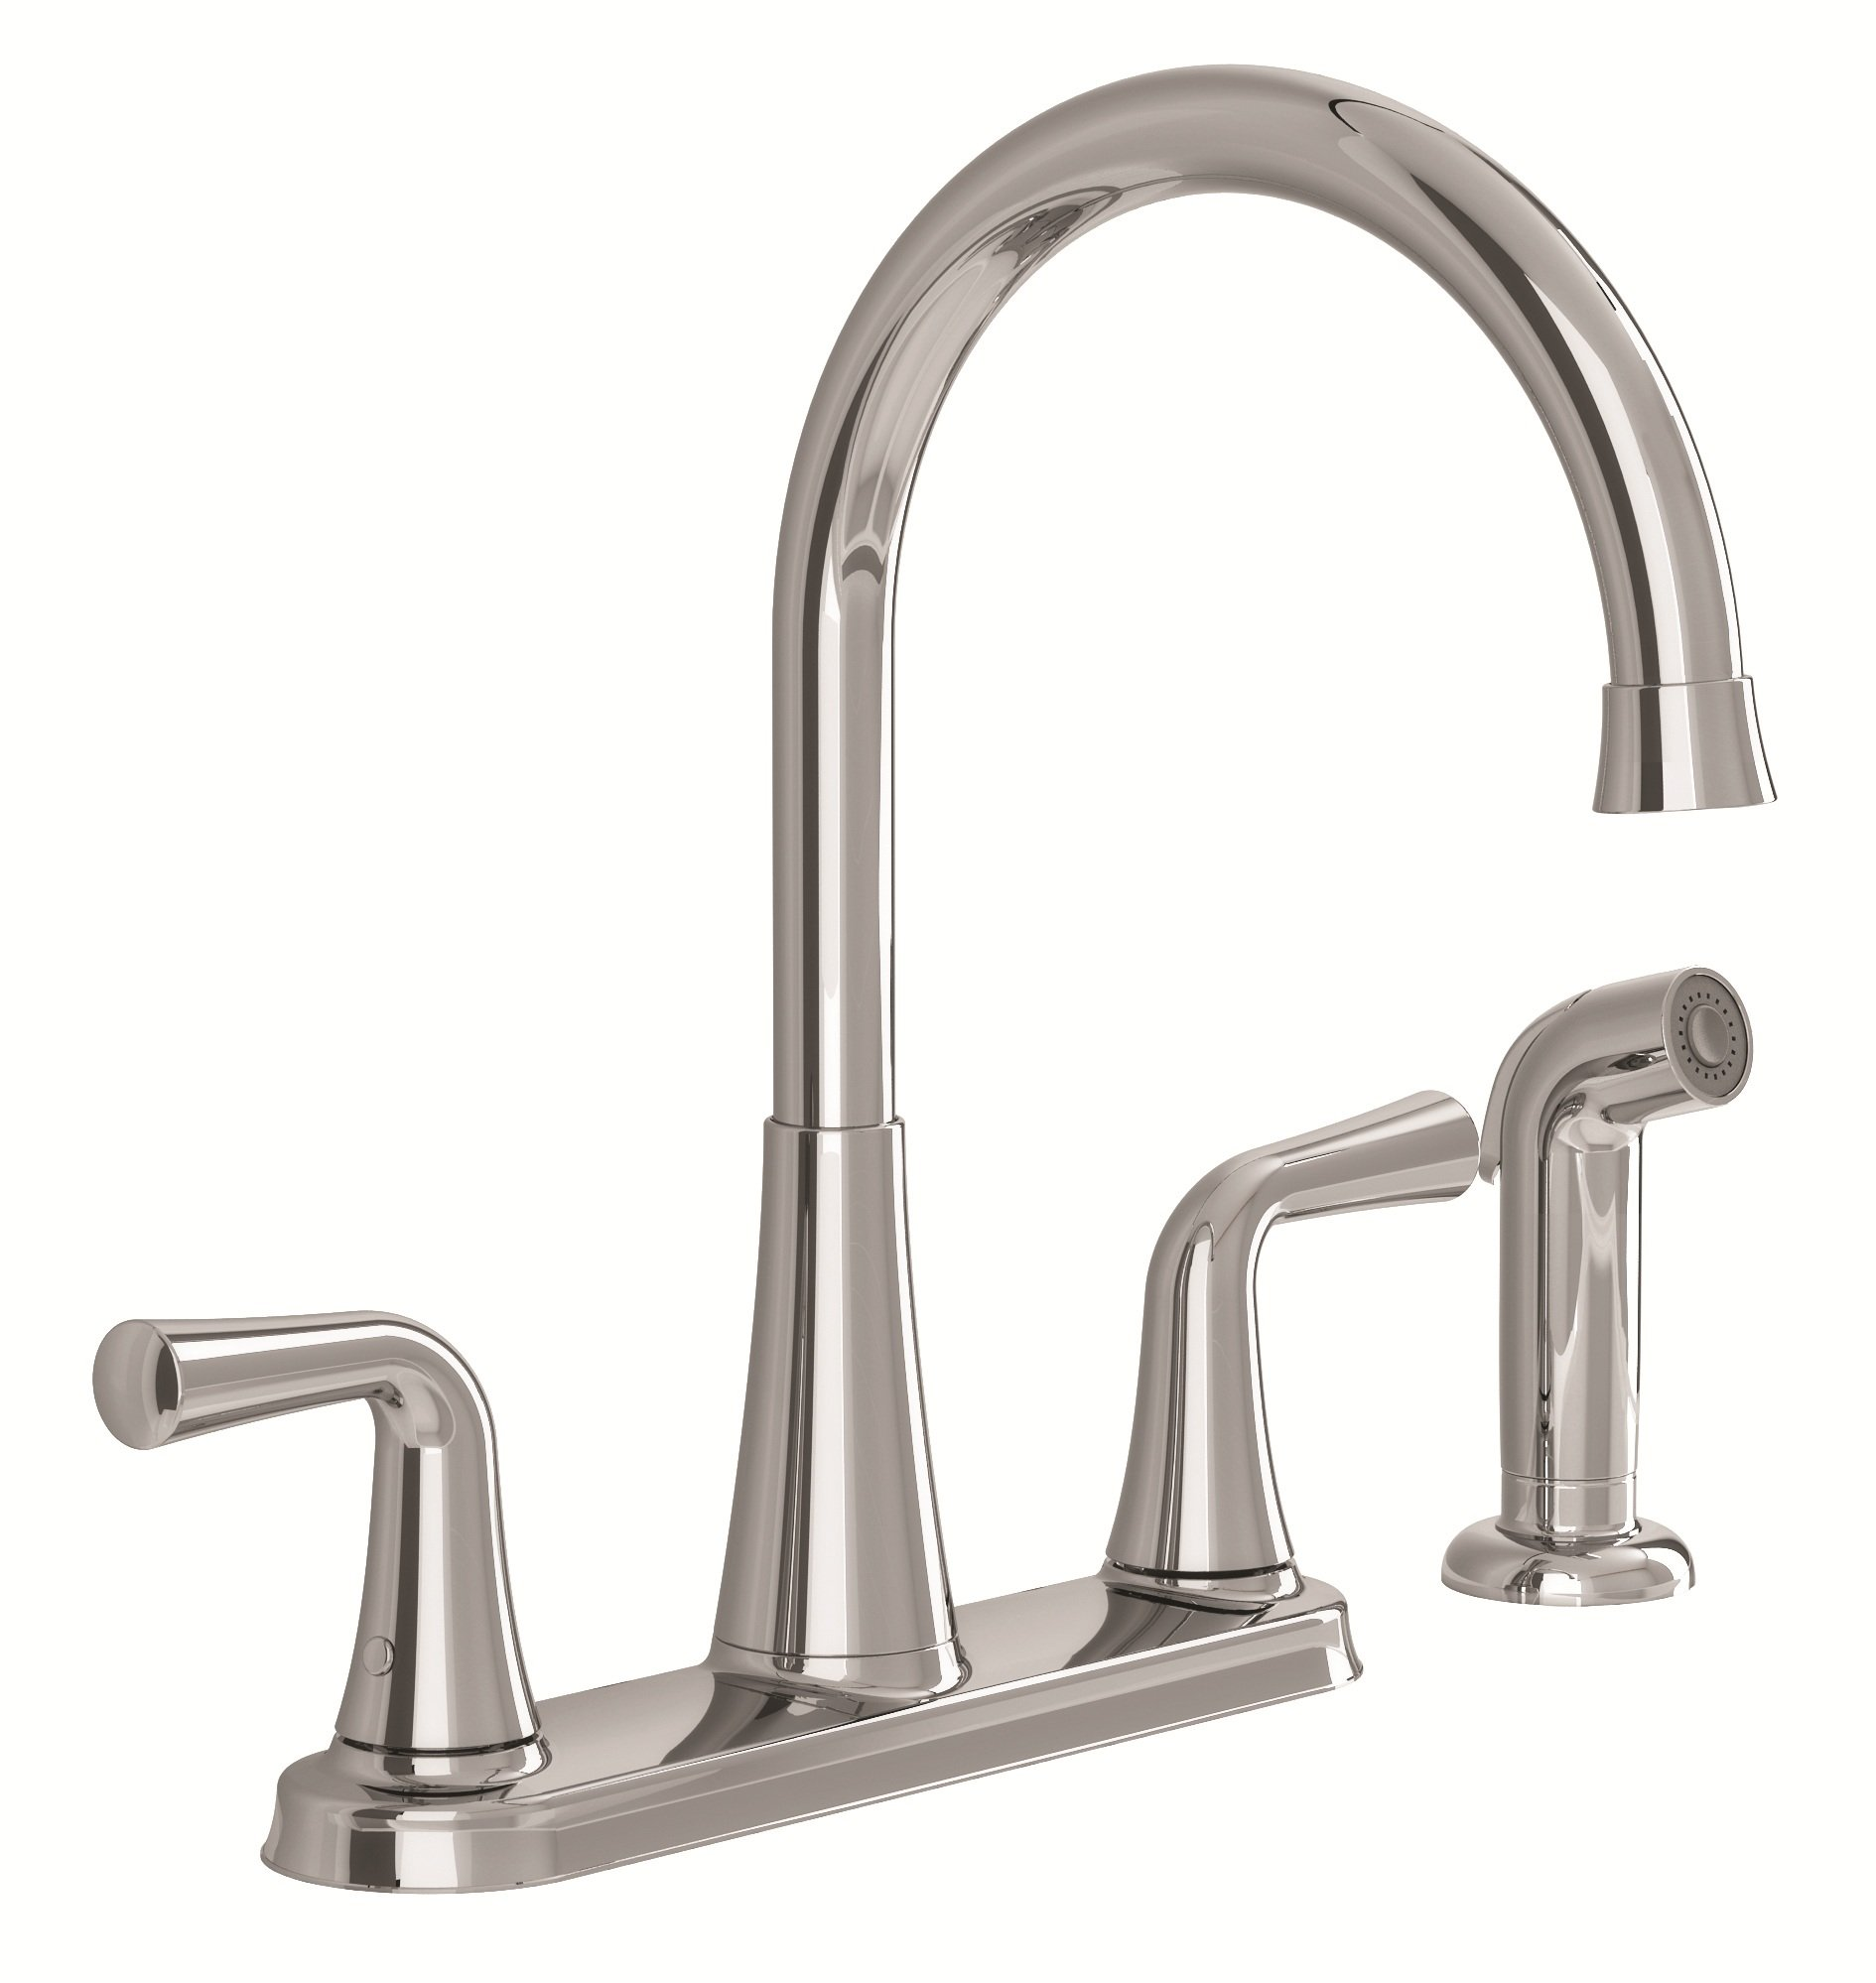 canada pulldown handle faucet with arc kitchen moen one chrome motionsense dp high sto featuring amazon reflex handles